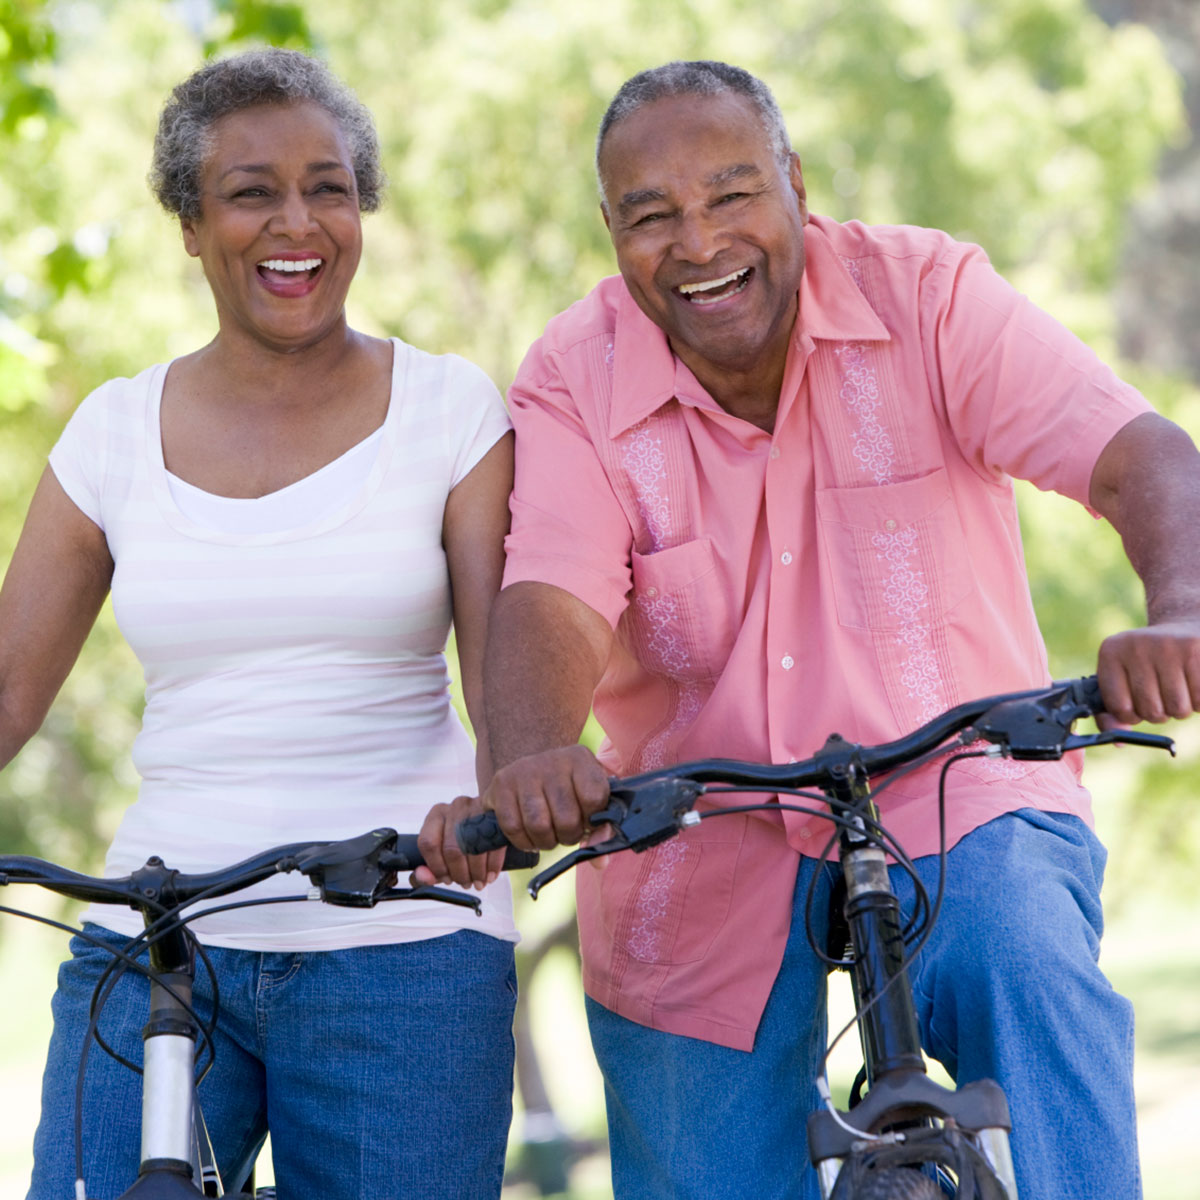 An older african american woman and man laughing having fun while riding their bicycles